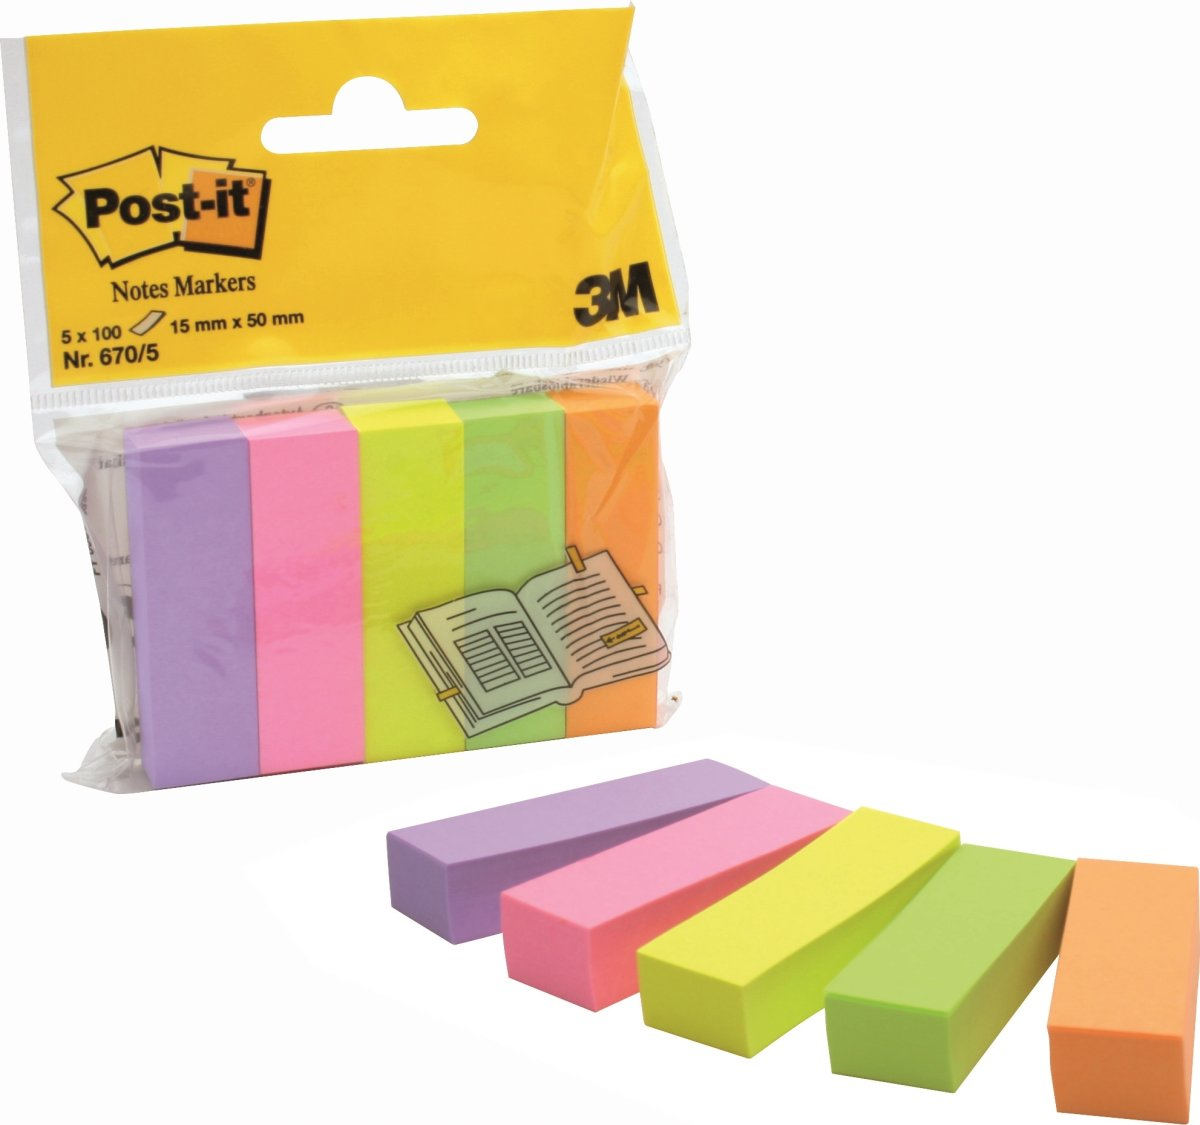 Post-it indexfaner 5 mix, 500 strips, neon farver